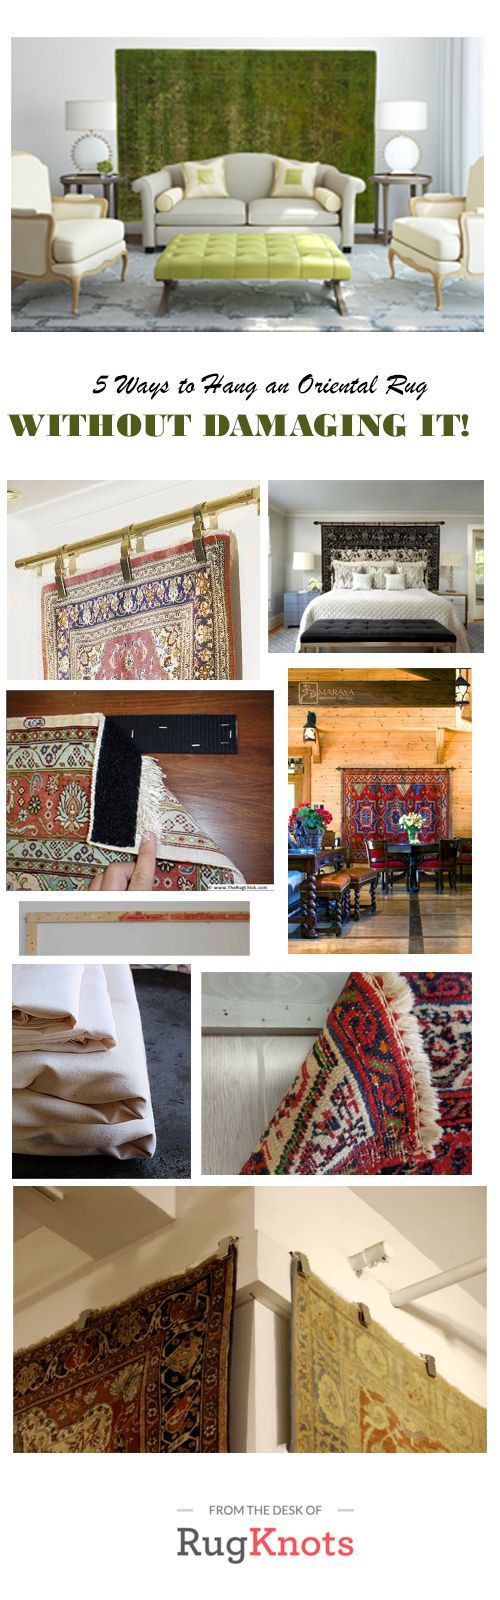 Want to add interest to your walls in a totally unique way? Hanging an oriental rug as a headboard or like a piece of art is a great way to display it and protect it. For step by step instructions and tips on how NOT to damage your oriental rug, check out the blog at RugKnots http://blog.rugknots.com/rug-care/hang-an-oriental-rug-without-damage/